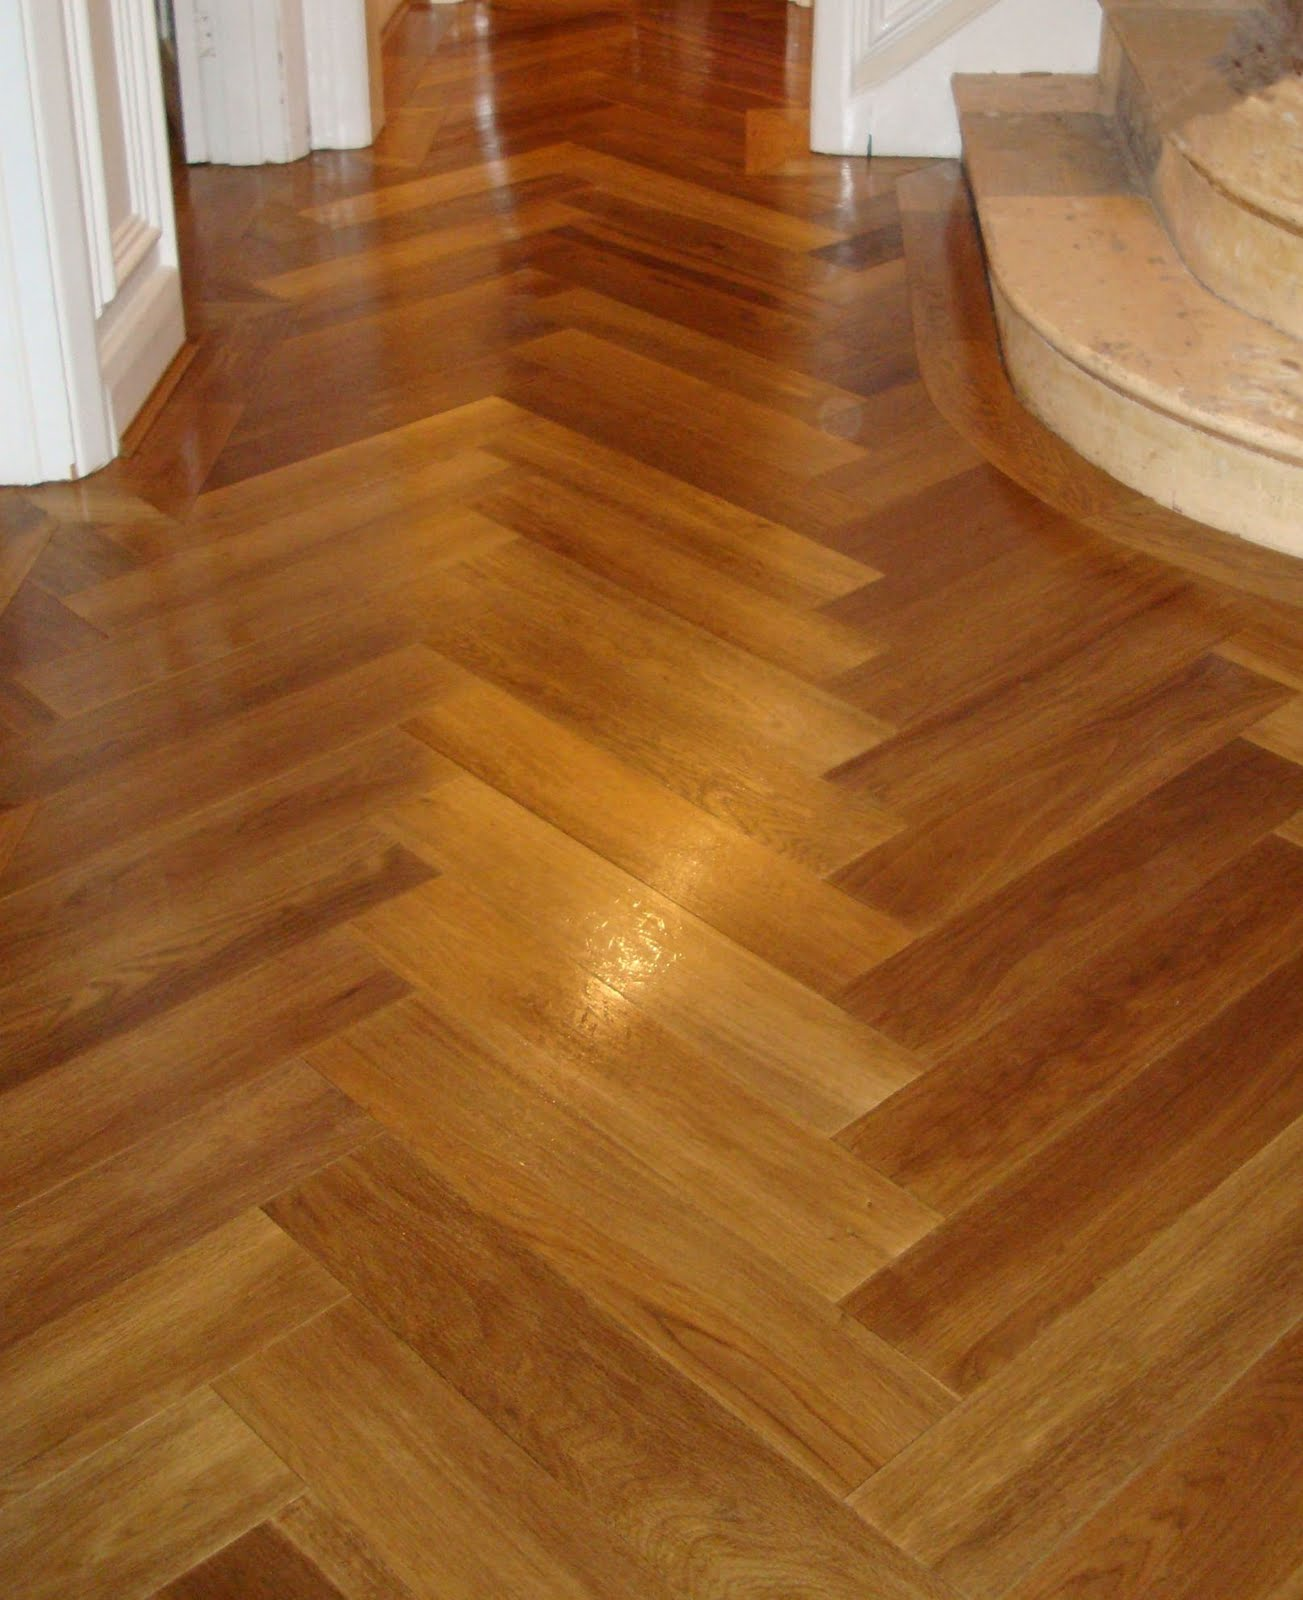 Design Of Flooring wood floor design ideas chingford private residence. design wood